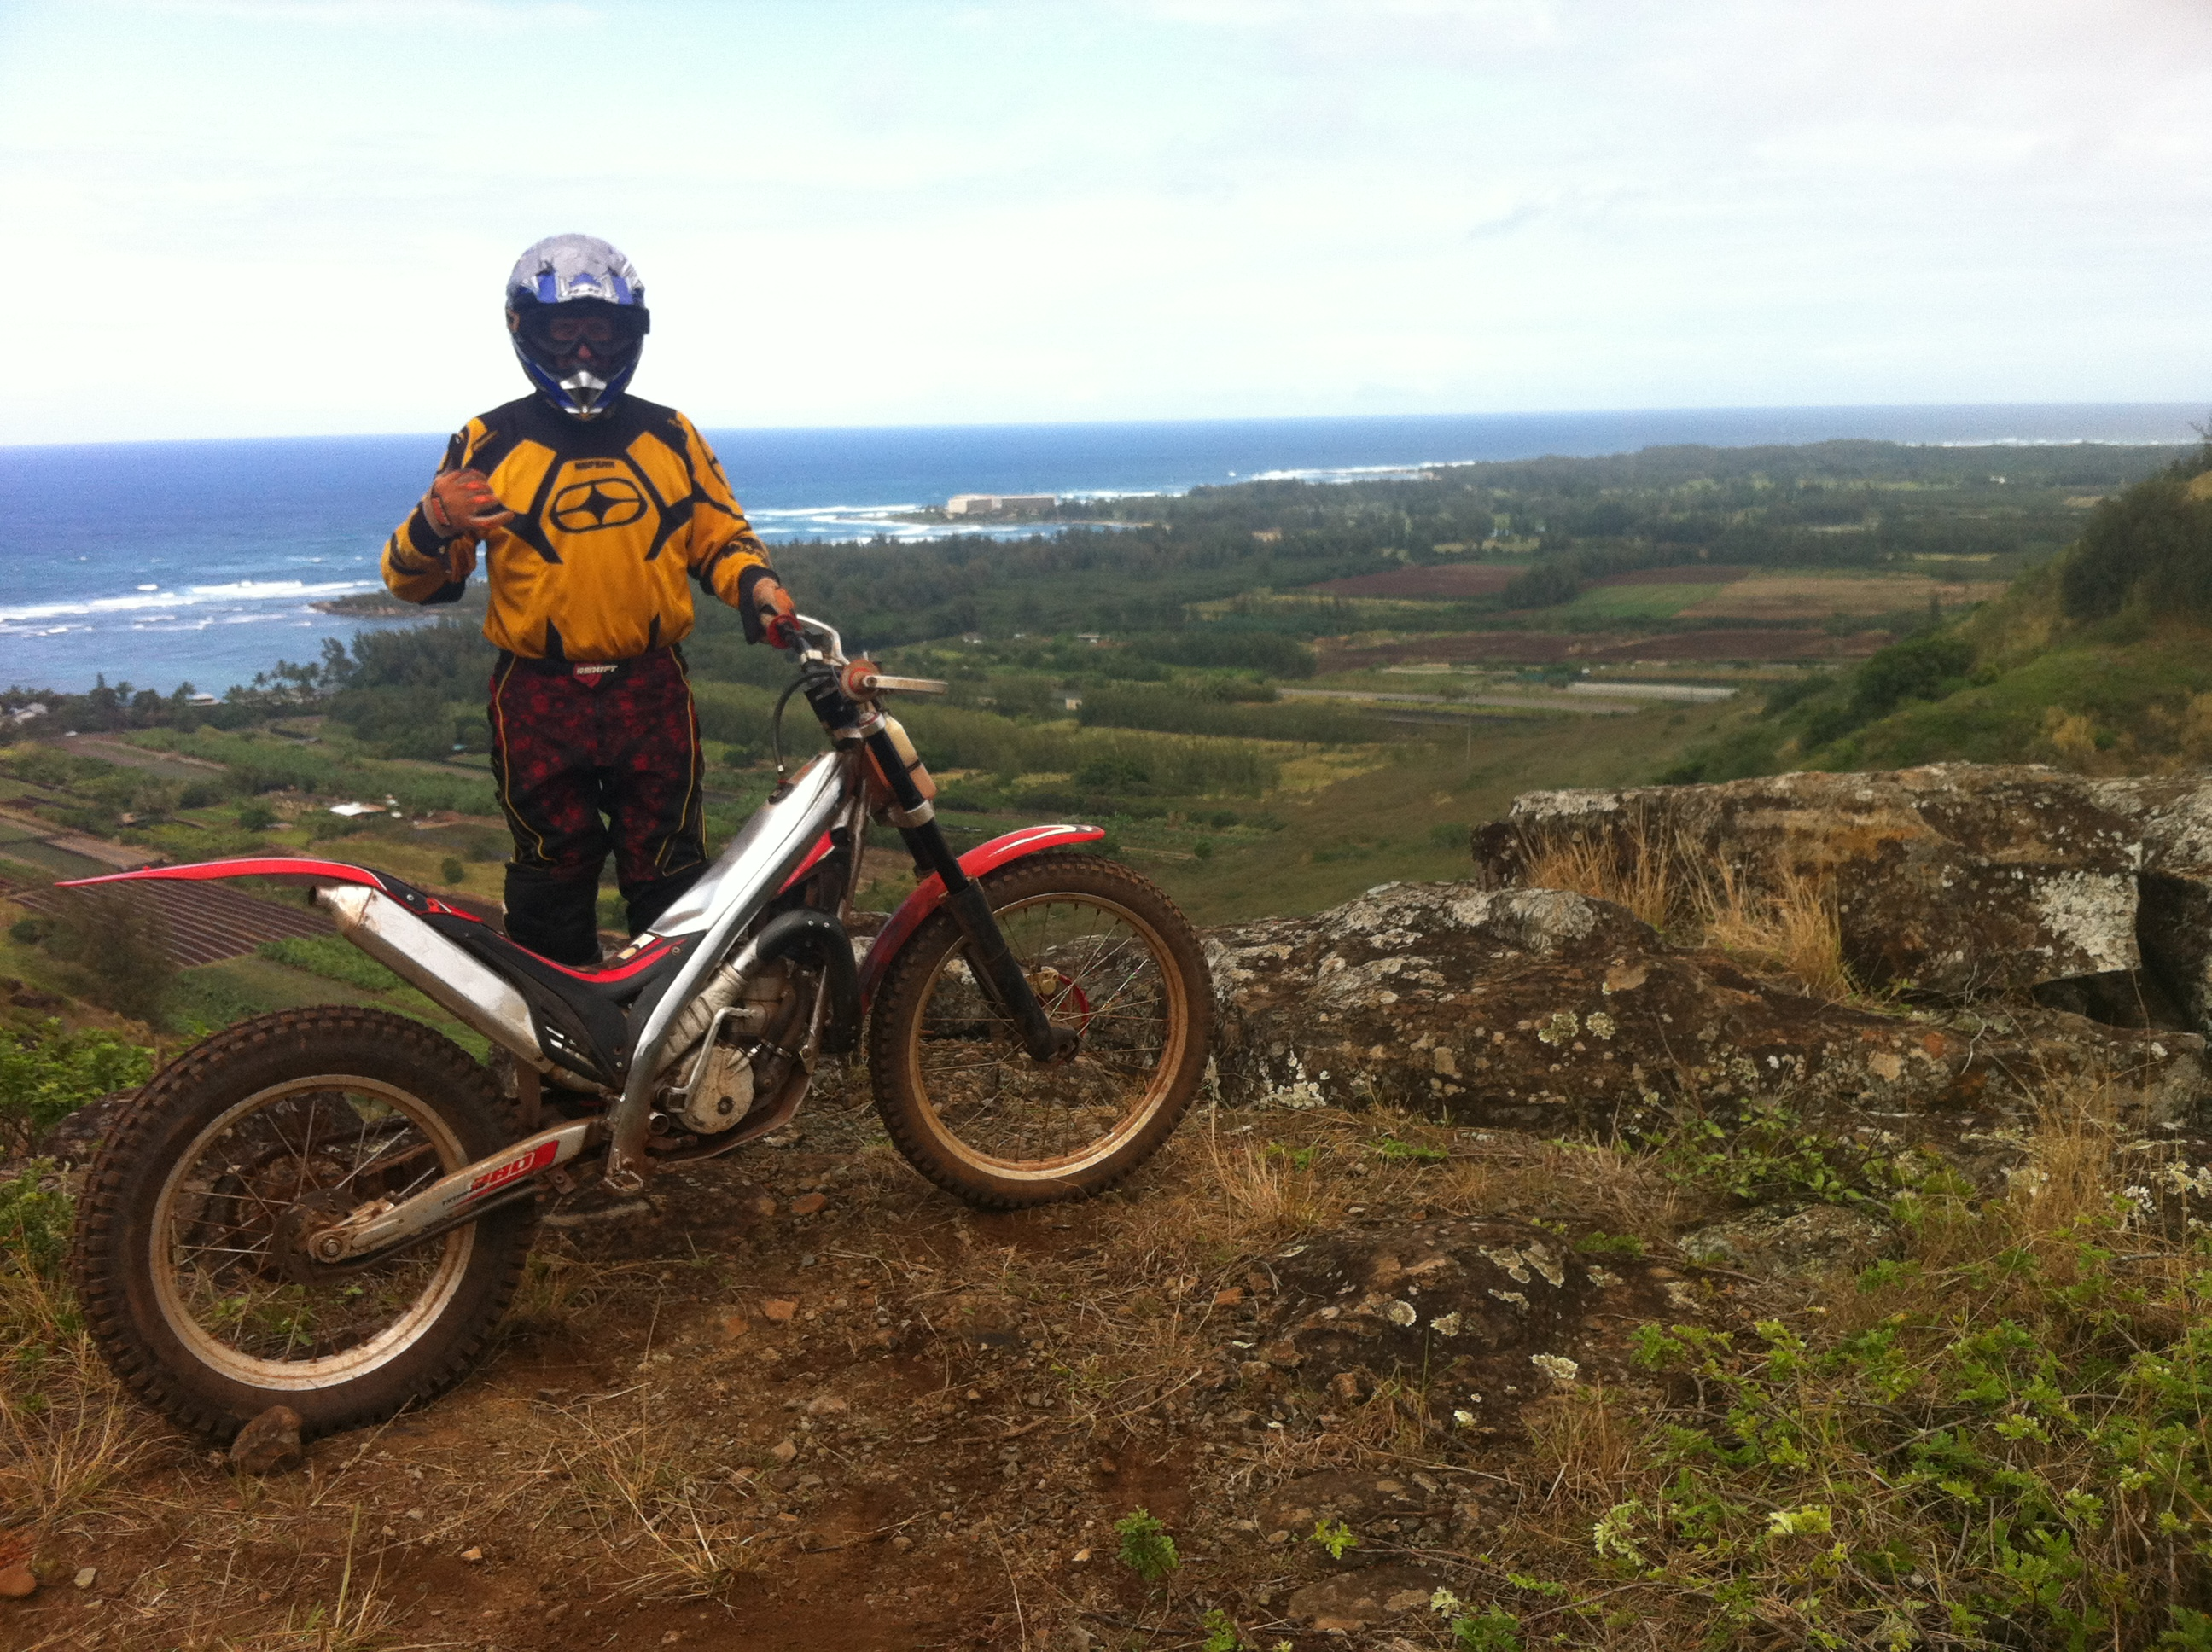 scenic dirtbike view